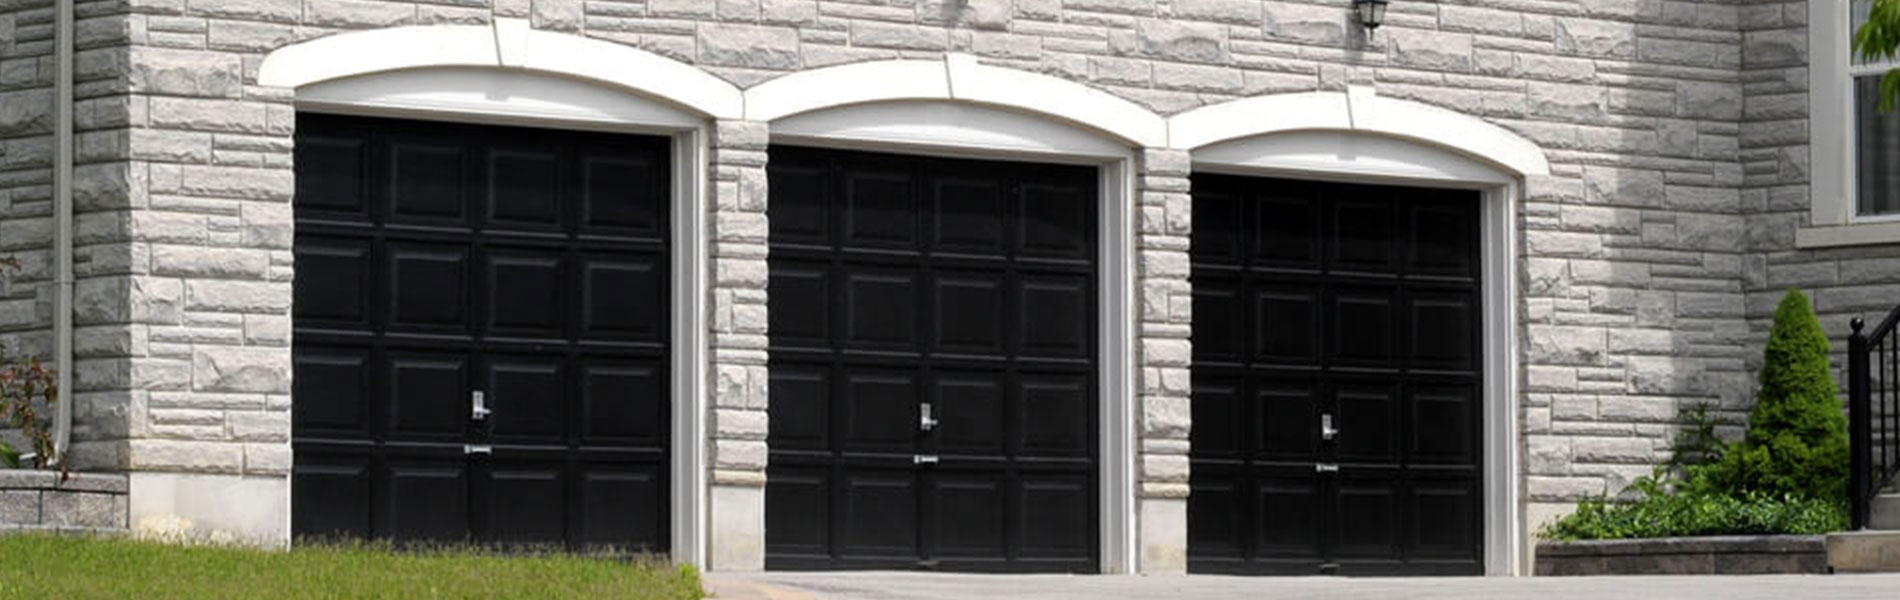 Neighborhood Garage Door Service, Phoenix, AZ 855-210-7837